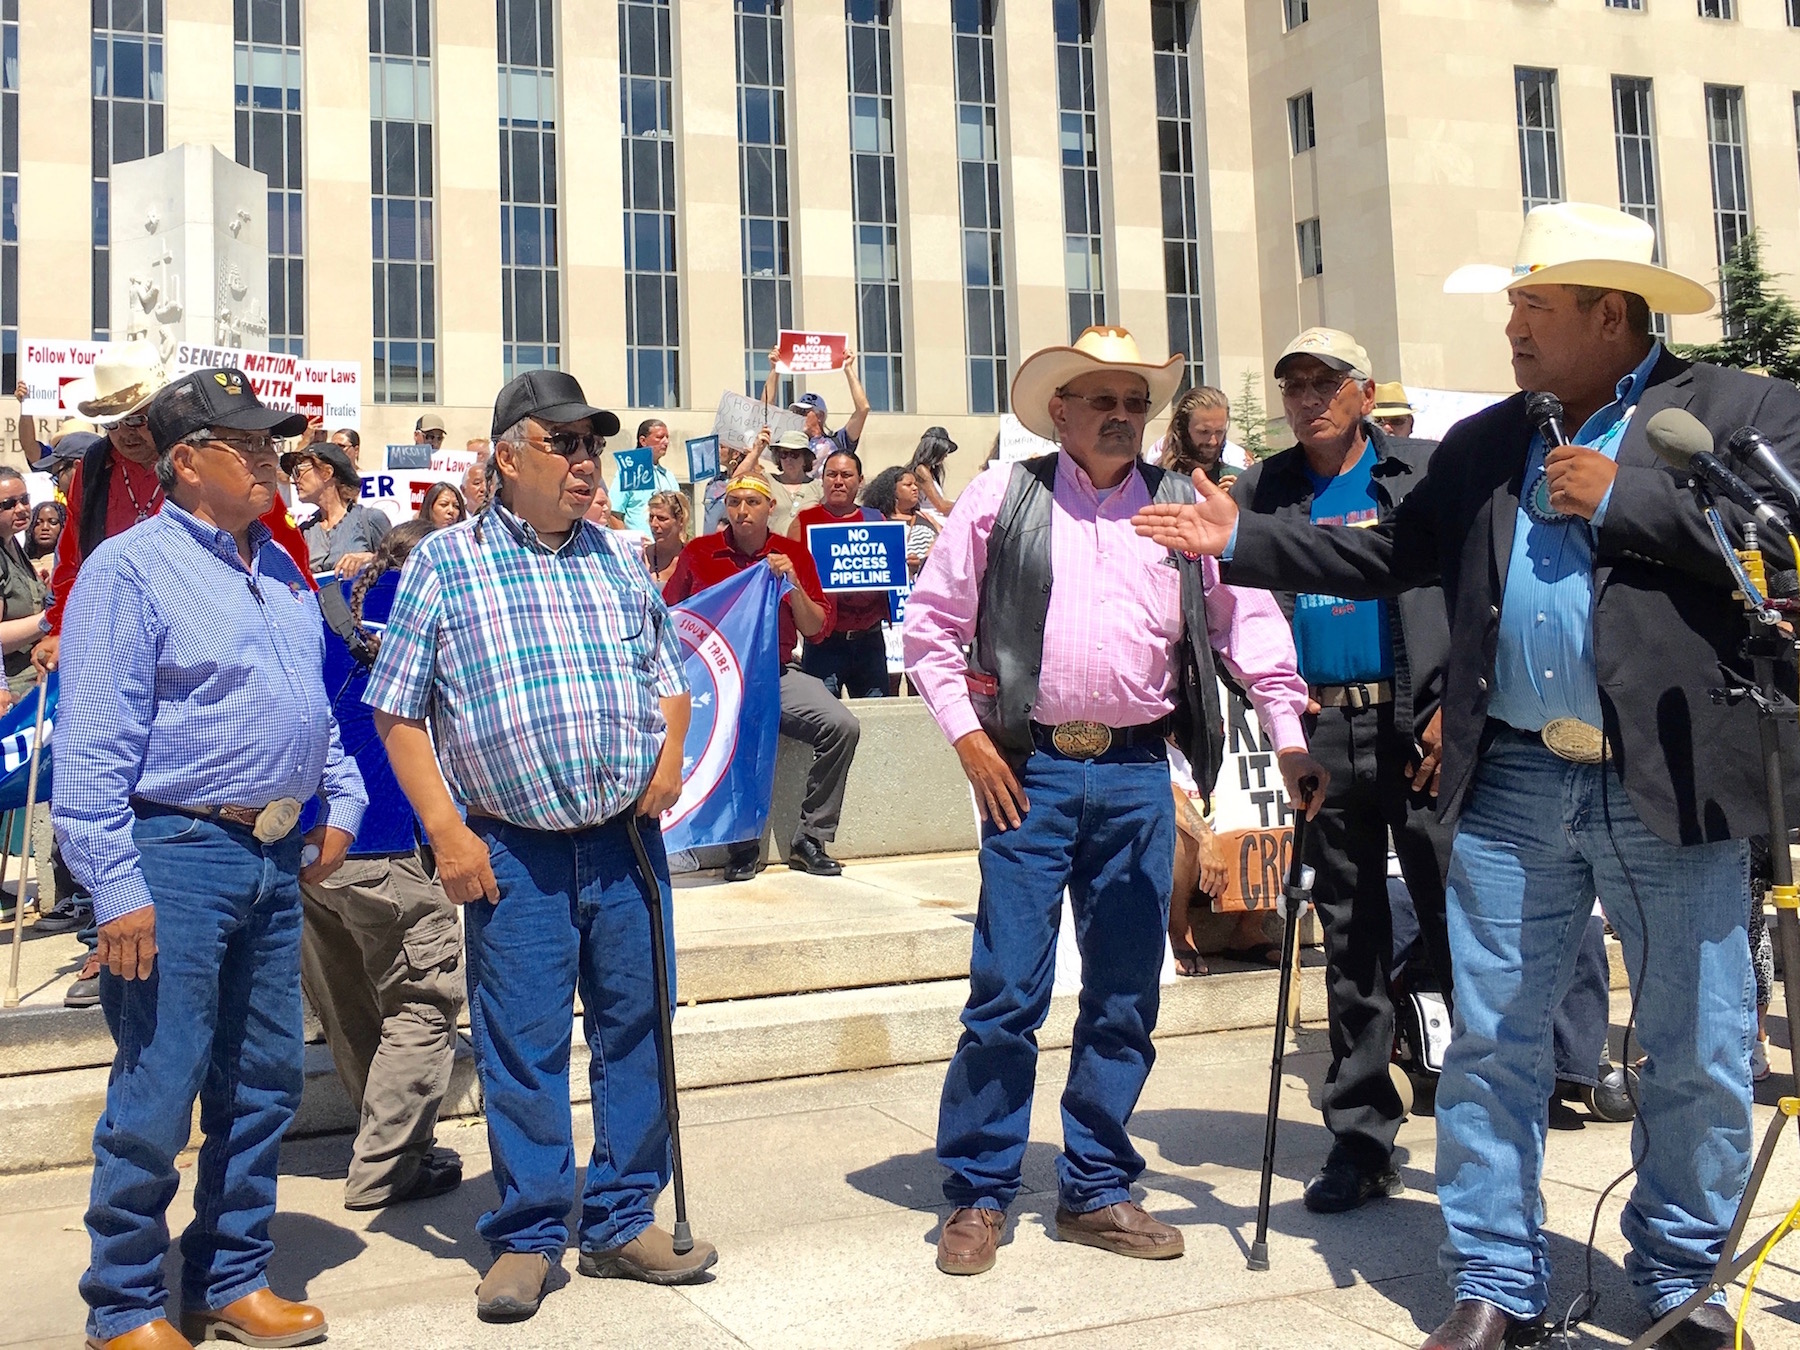 Cheyenne River Sioux Tribe can pursue own #NoDAPL complaint